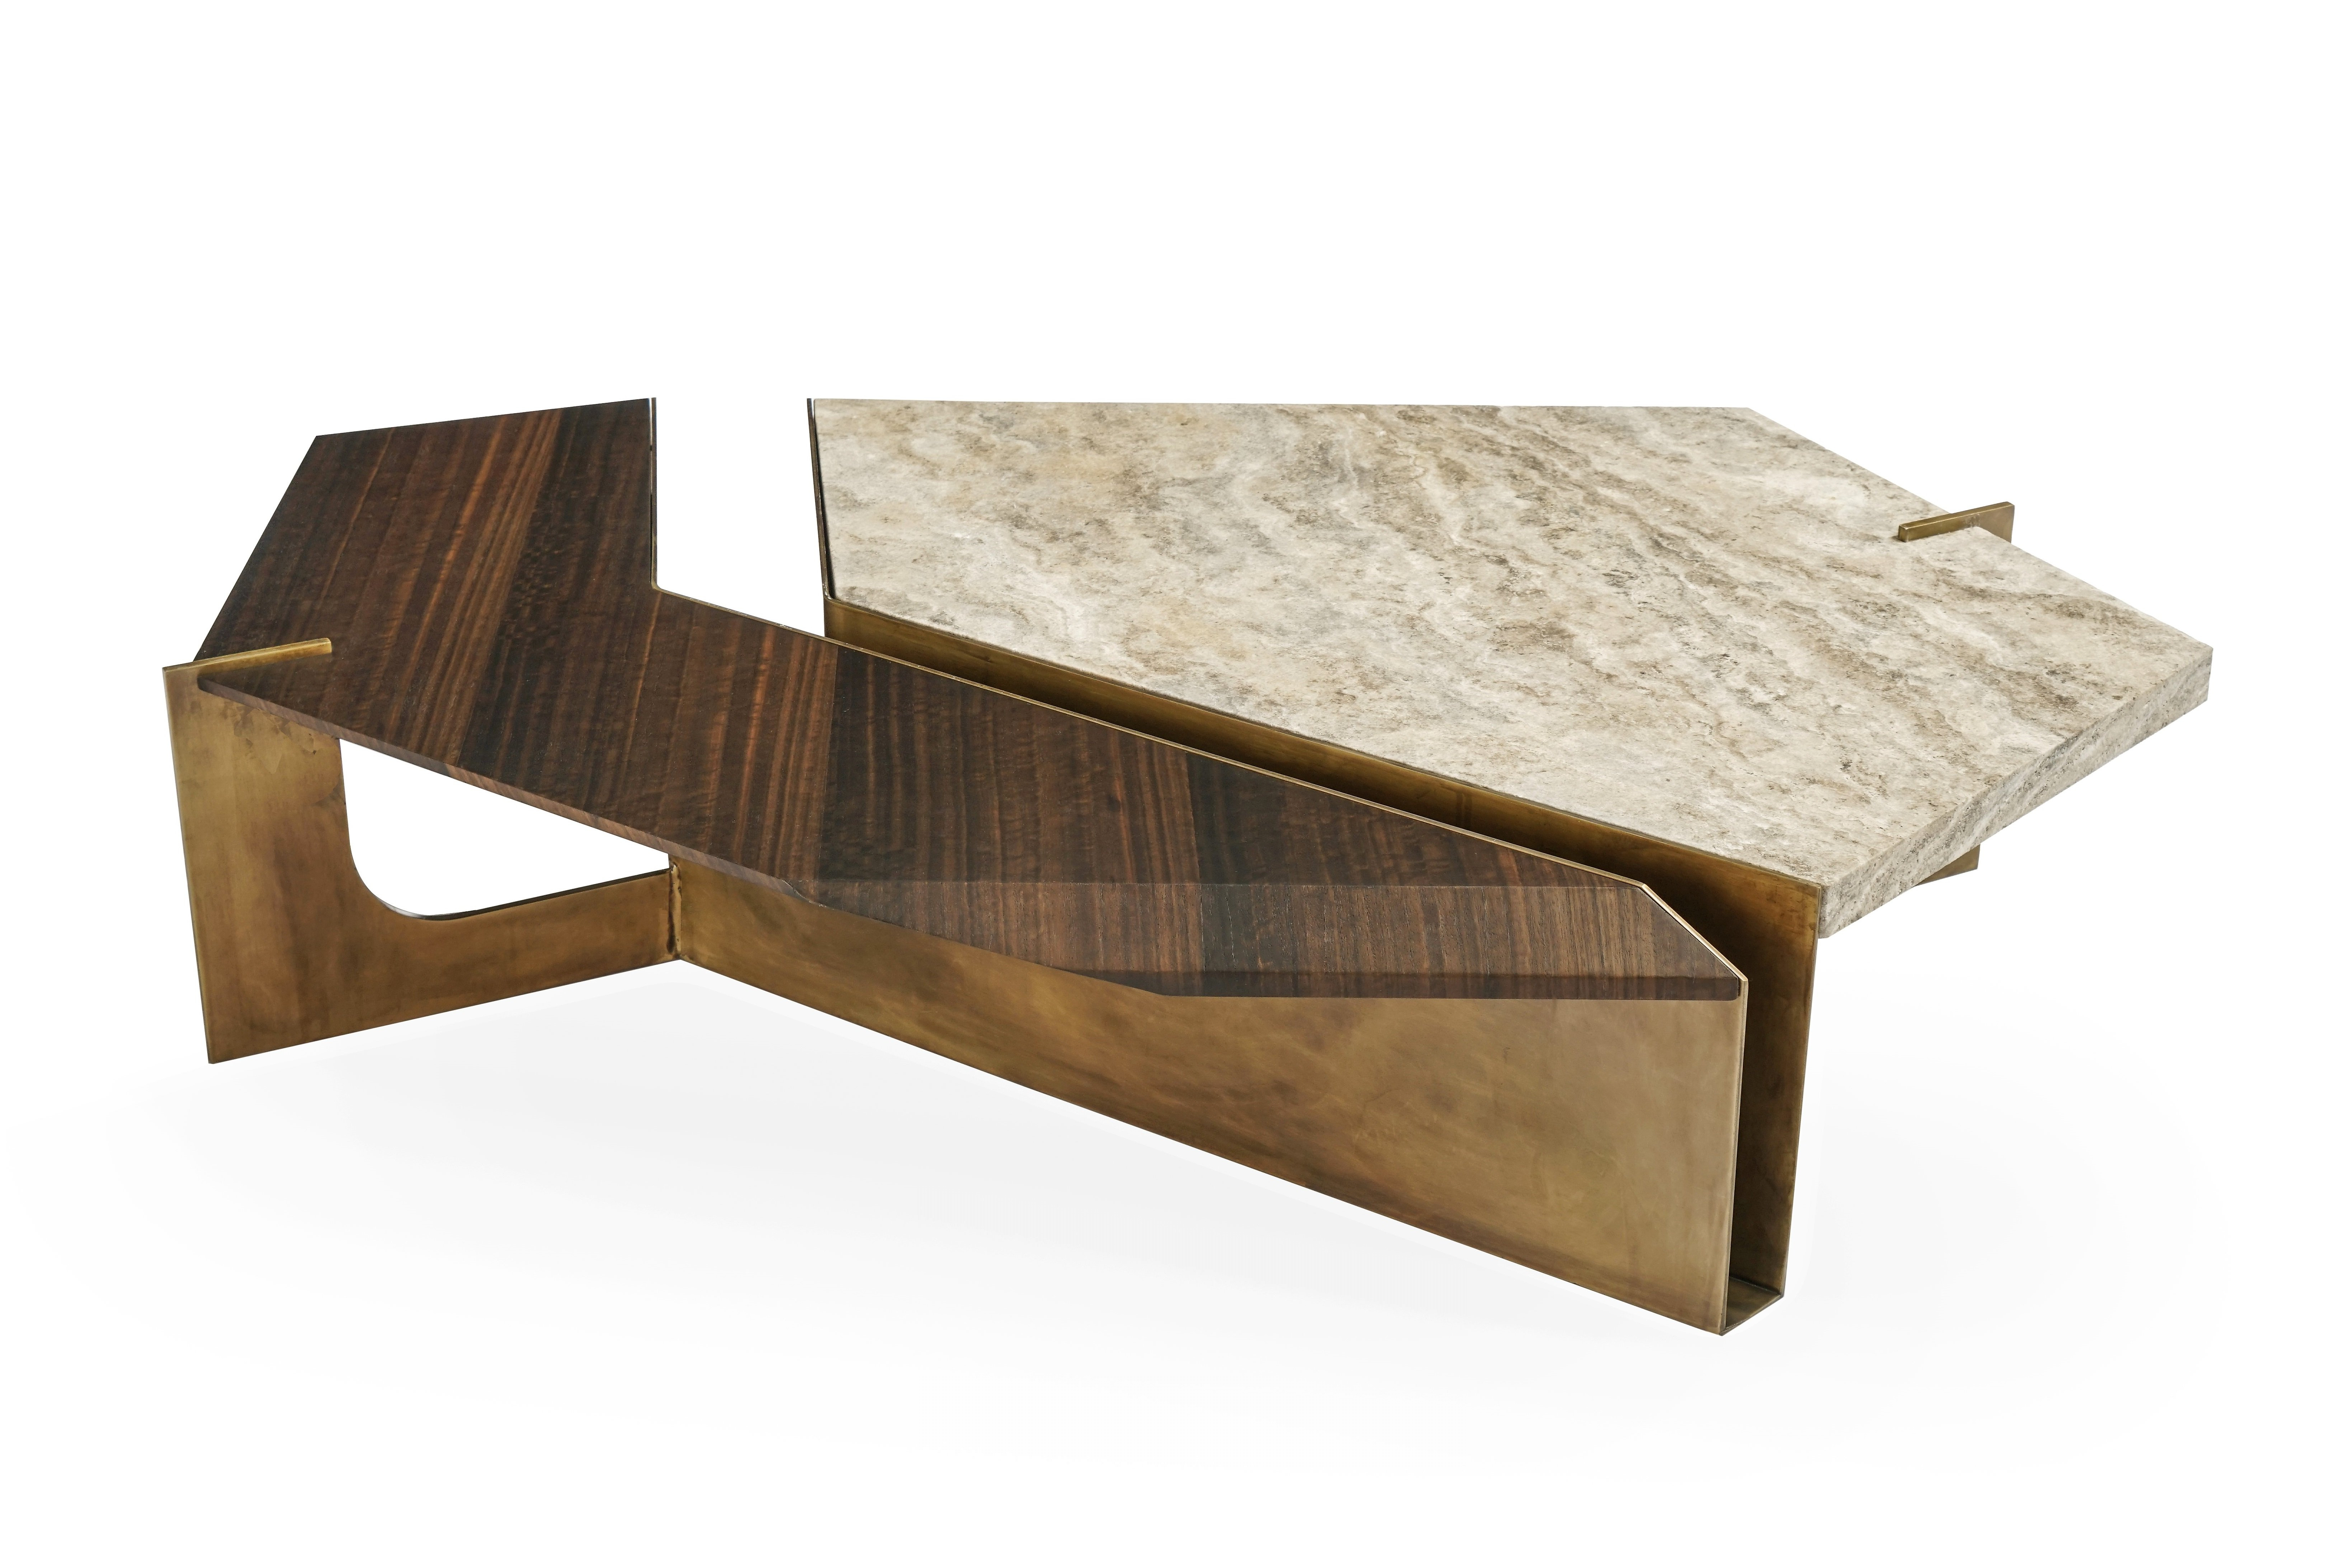 Newest Stratus Cocktail Tables With Regard To Stratus Coffee Table, Contemporary Centre Table In Aged Brass And (View 16 of 20)